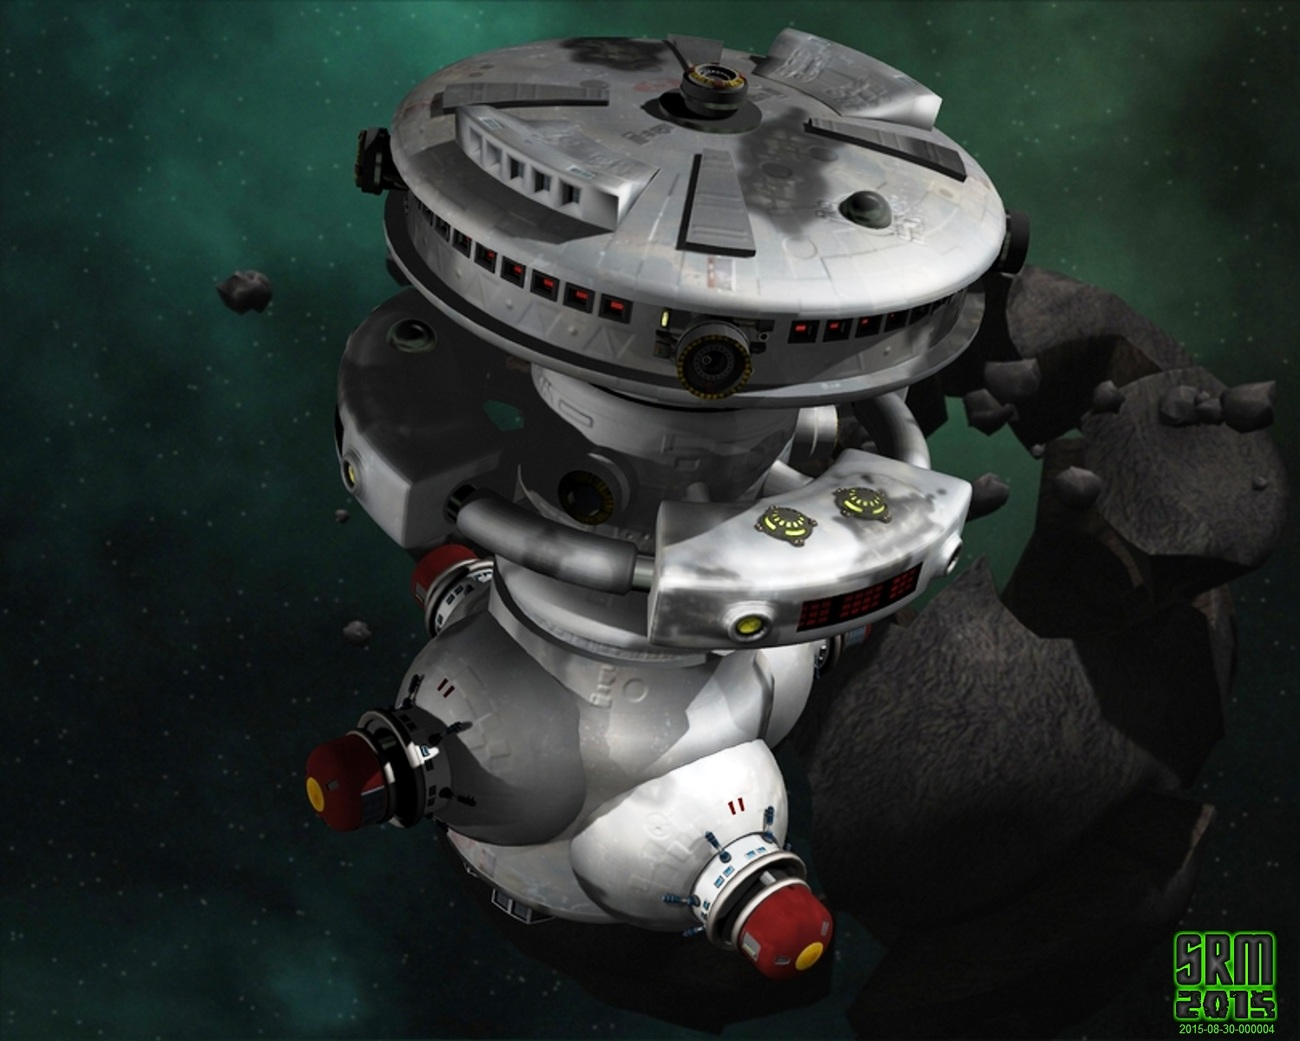 DEEP SPACE OUTPOST by azmulder DAZ|Studio Science Fiction